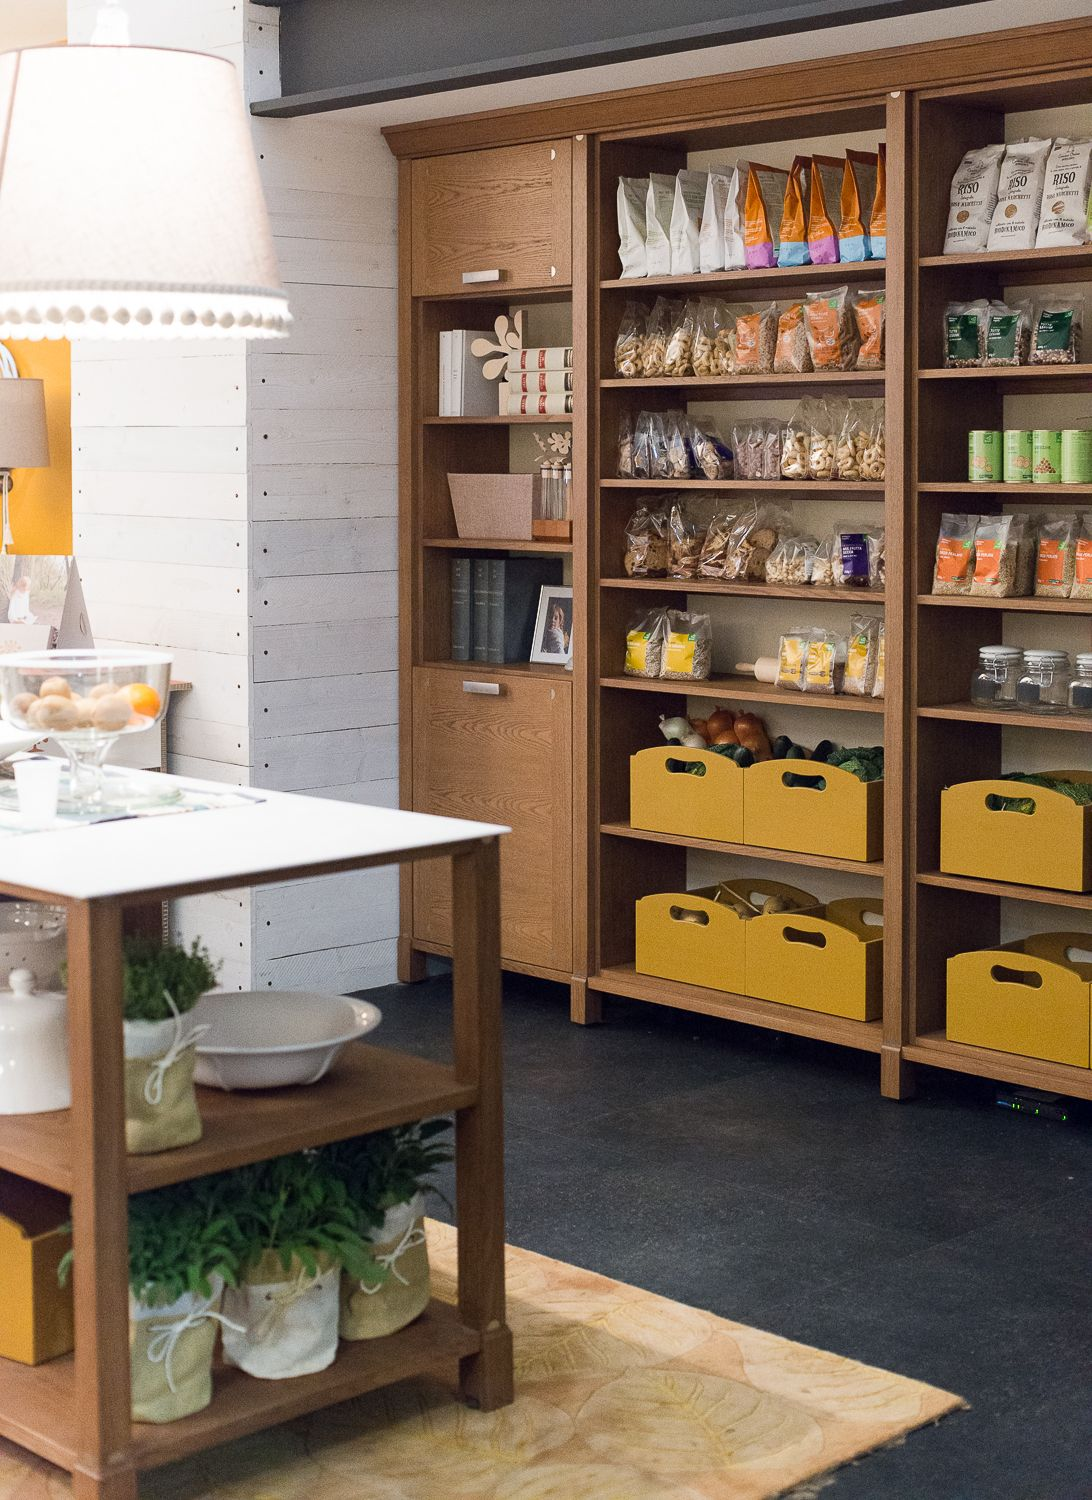 Italian kitchen design features useful items openly